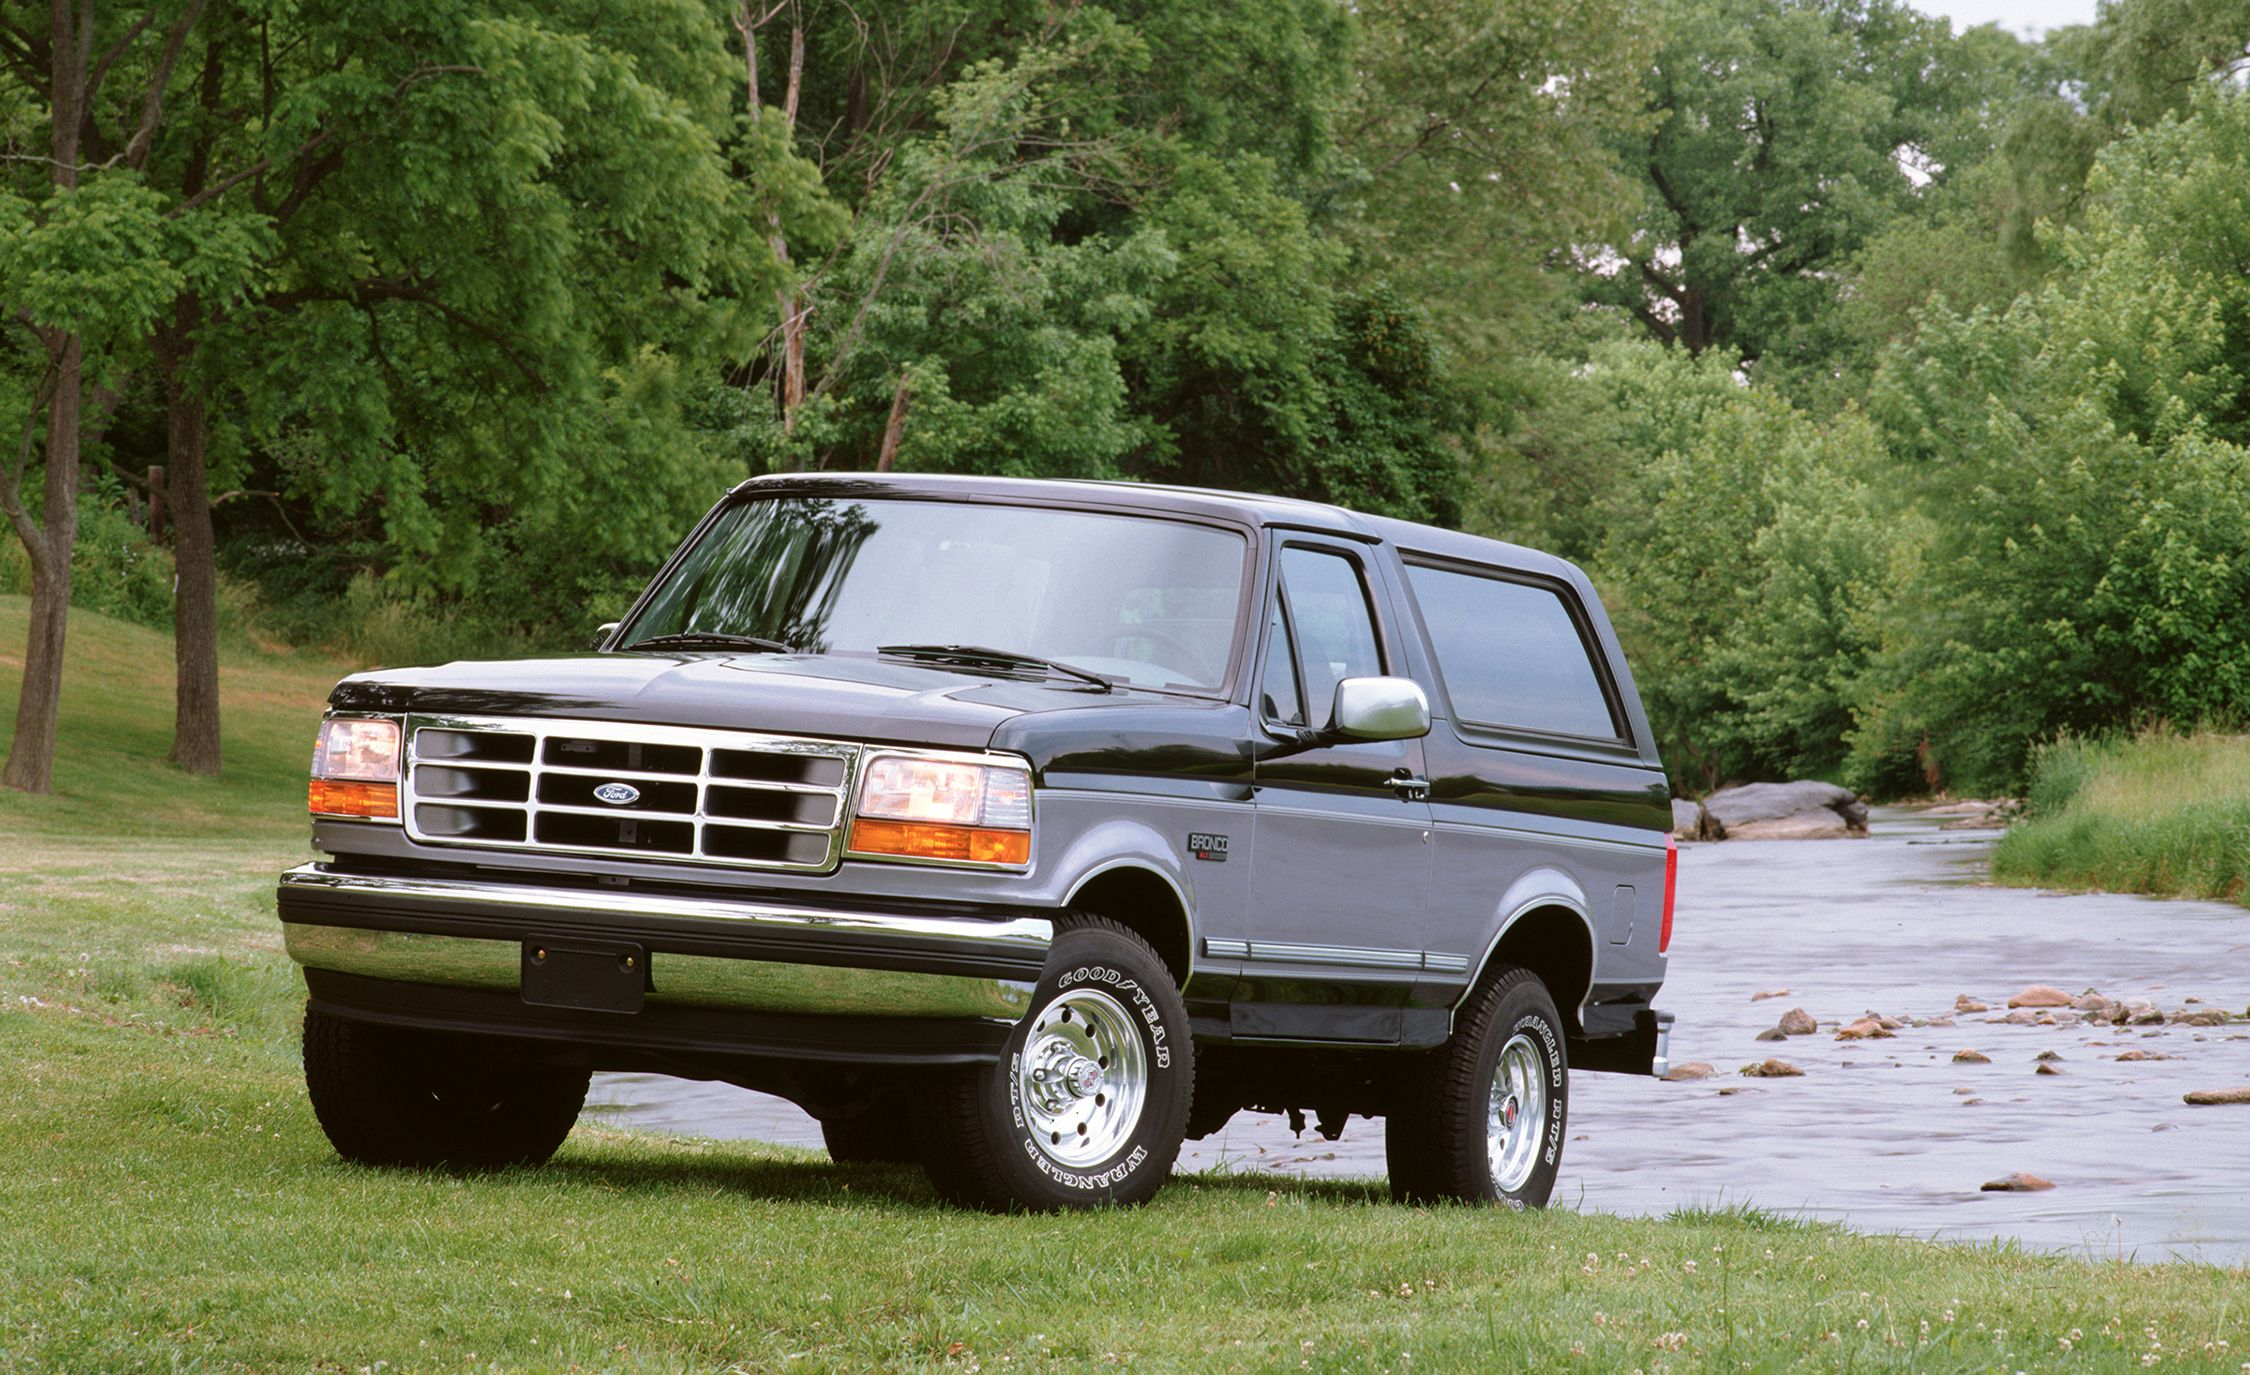 A Visual History Of The Ford Bronco From Trail Crawling To Slow 1980 Headlights Speed Chases